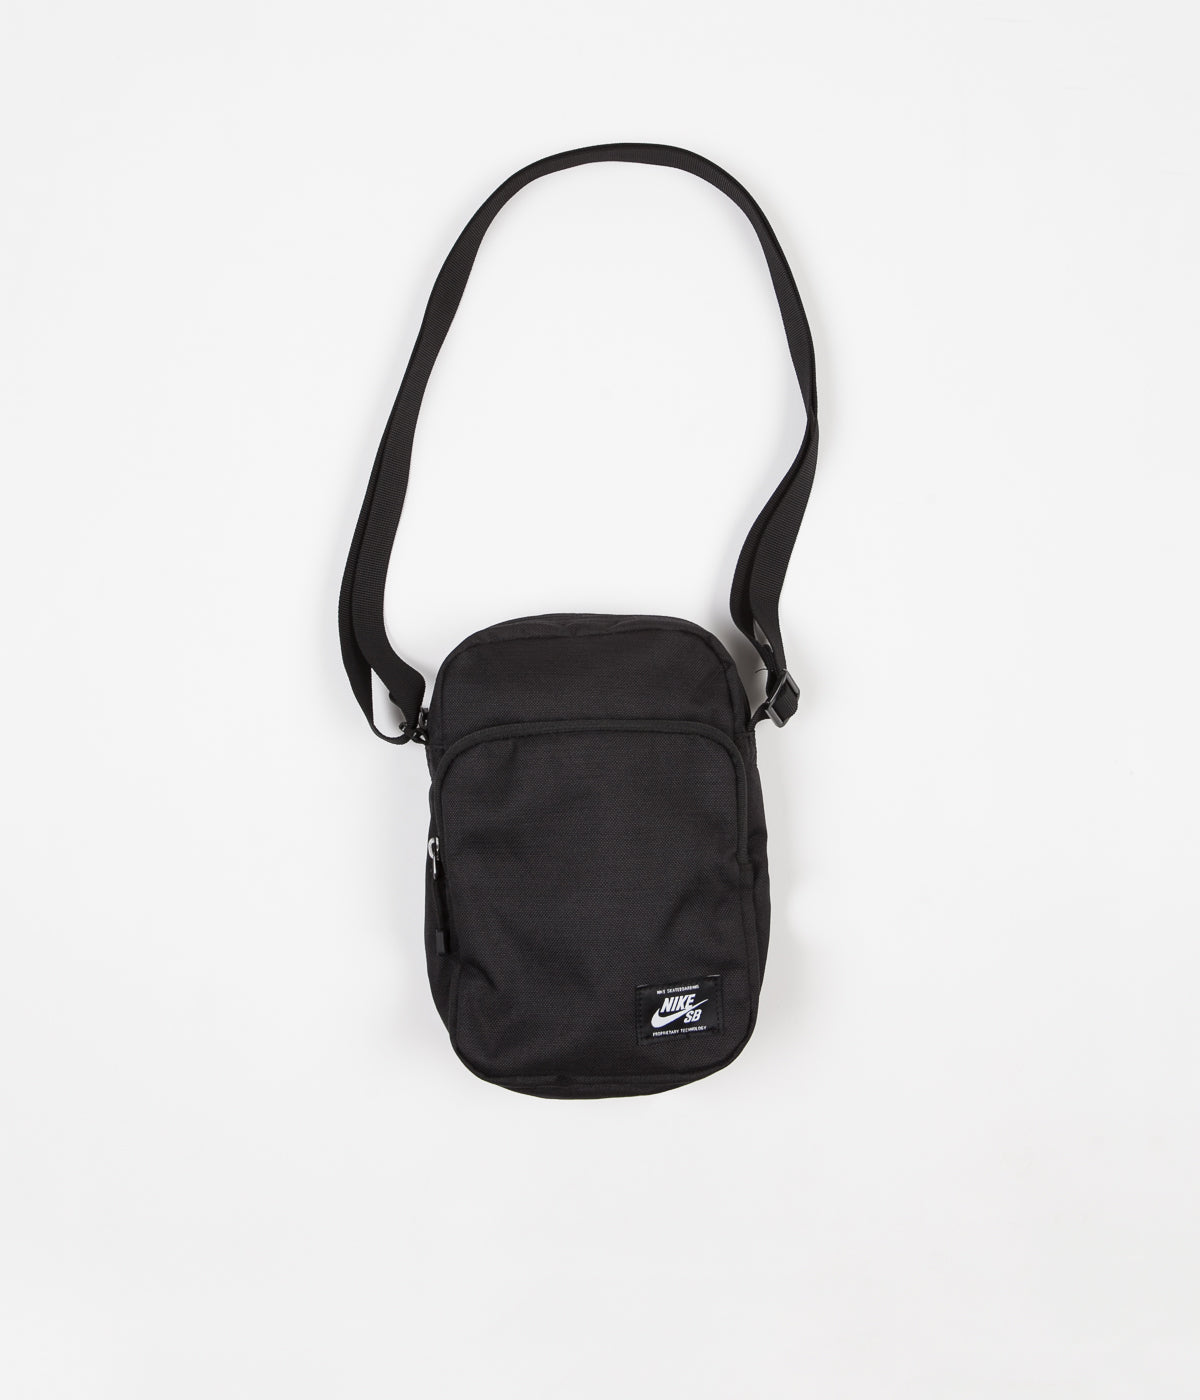 Nike SB Heritage Bag - Black / Black / White